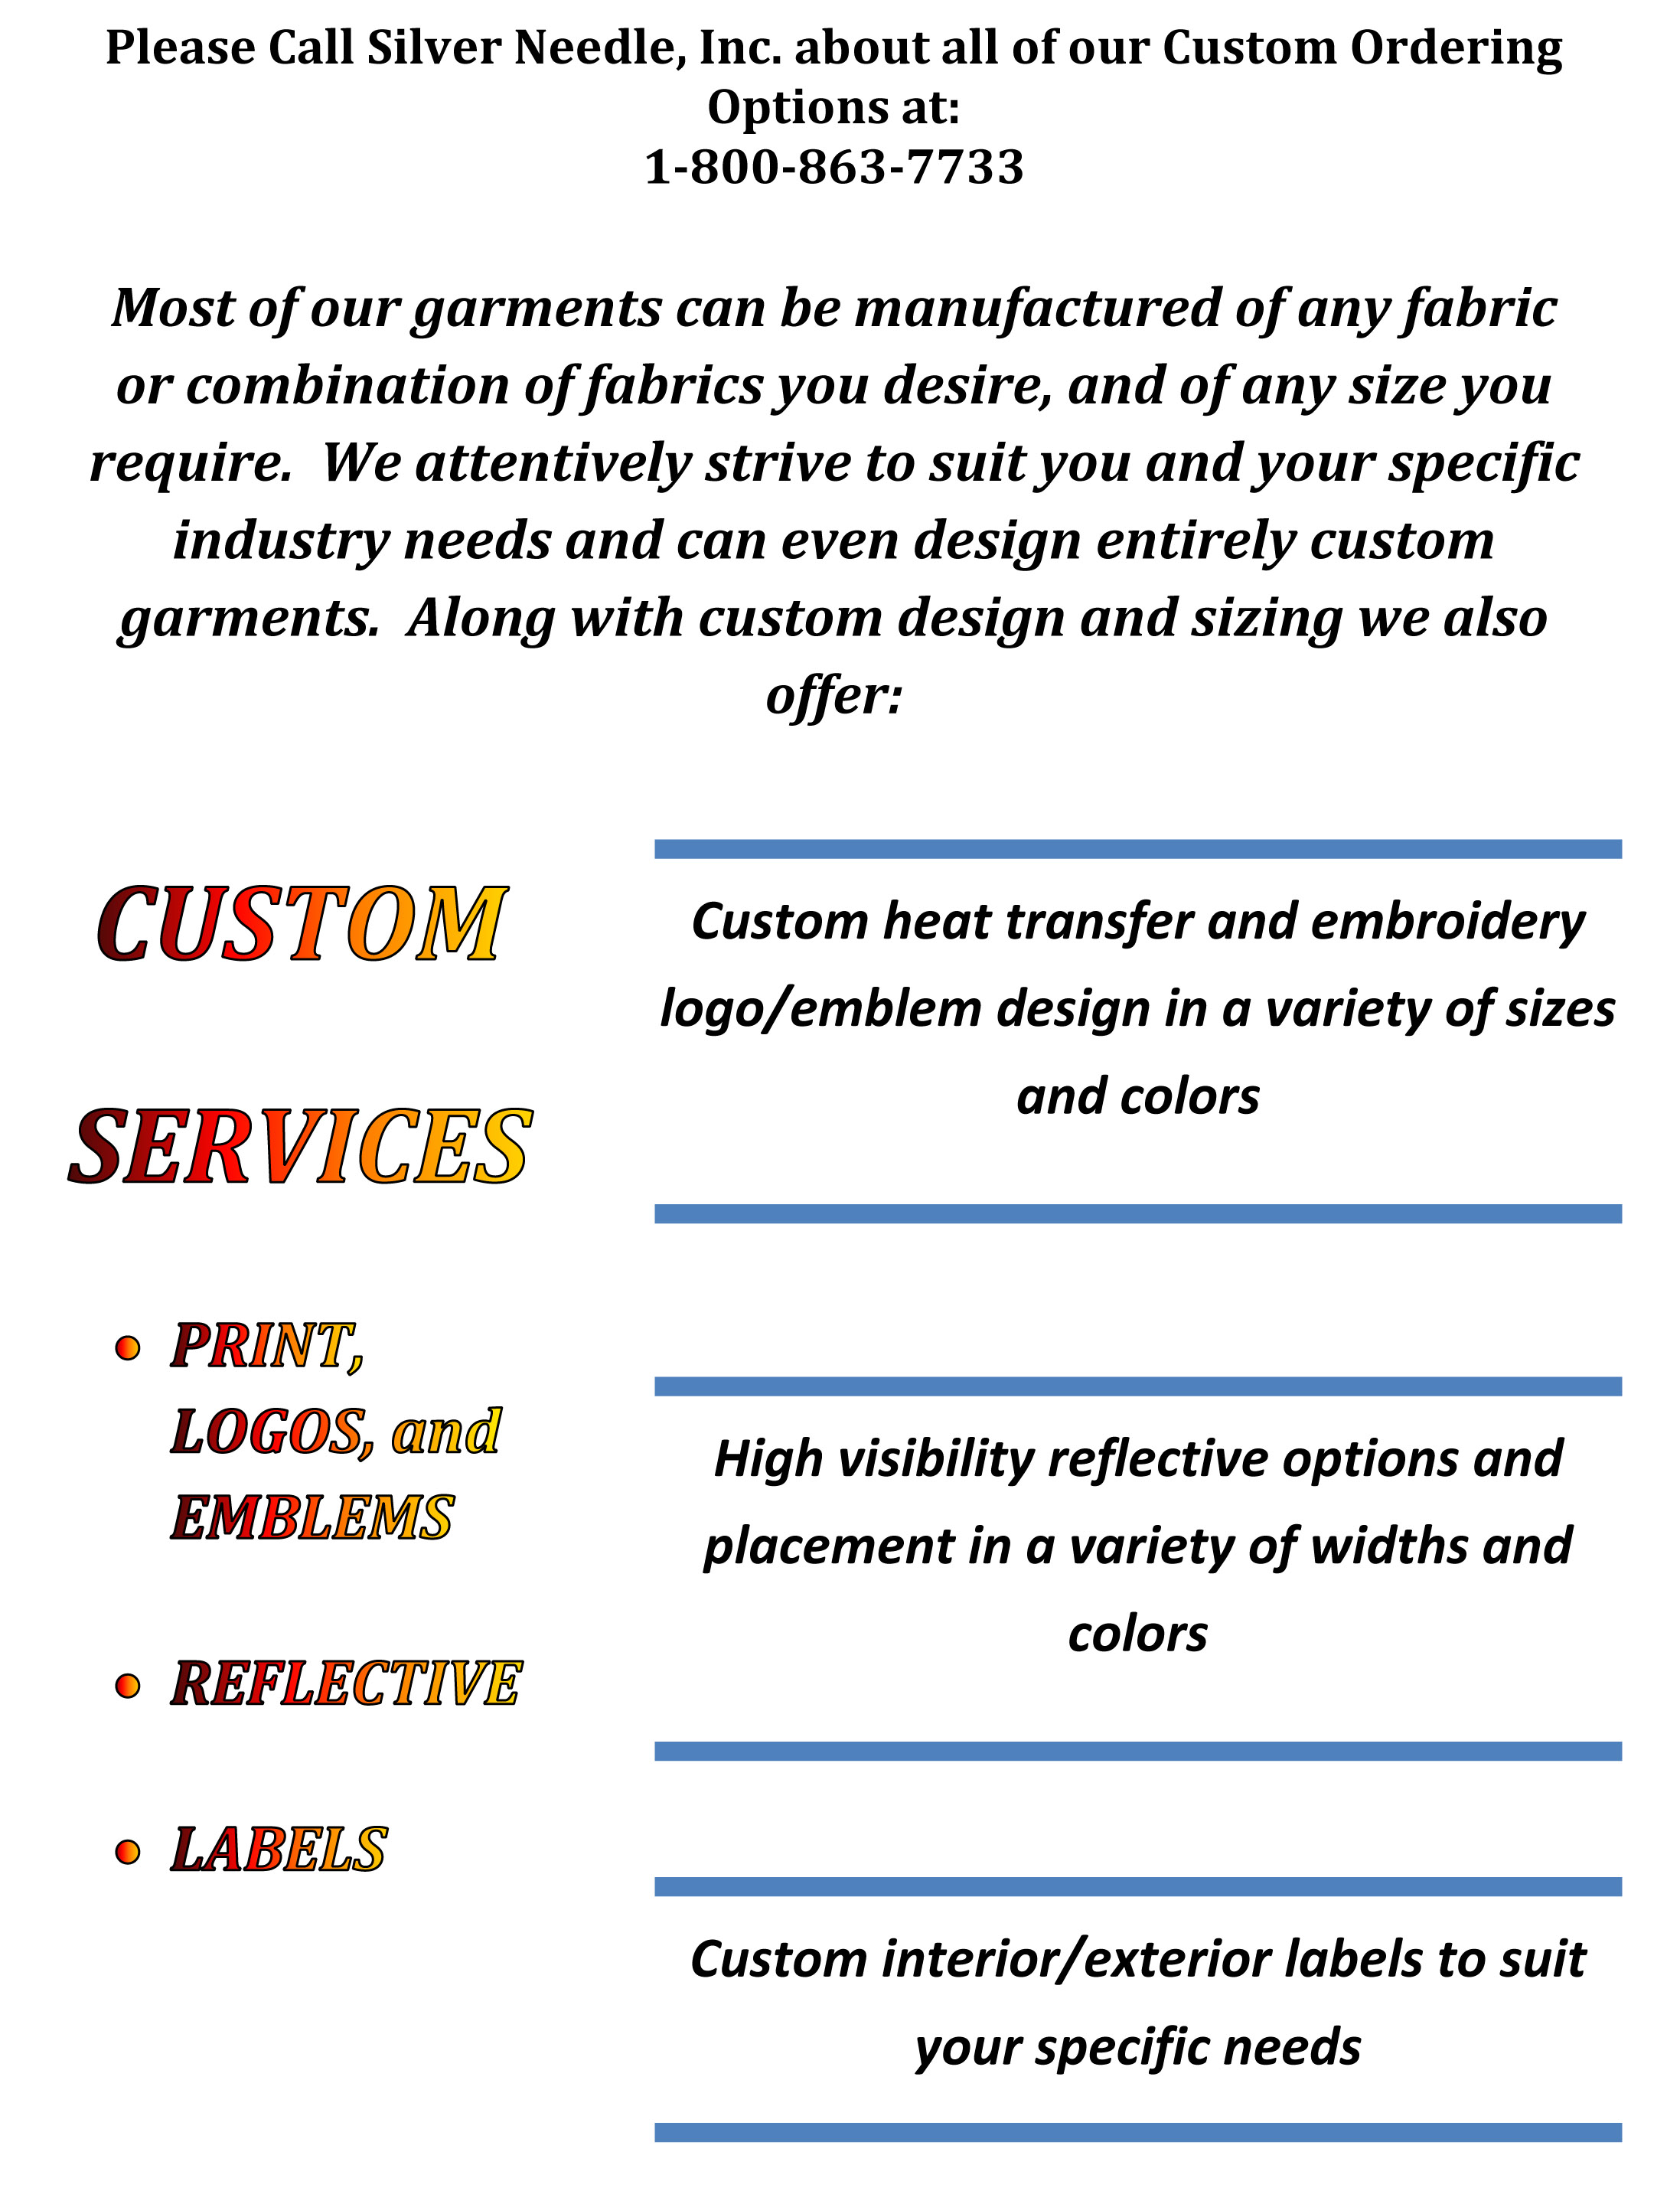 custom-services-labels-reflective-logos.jpg